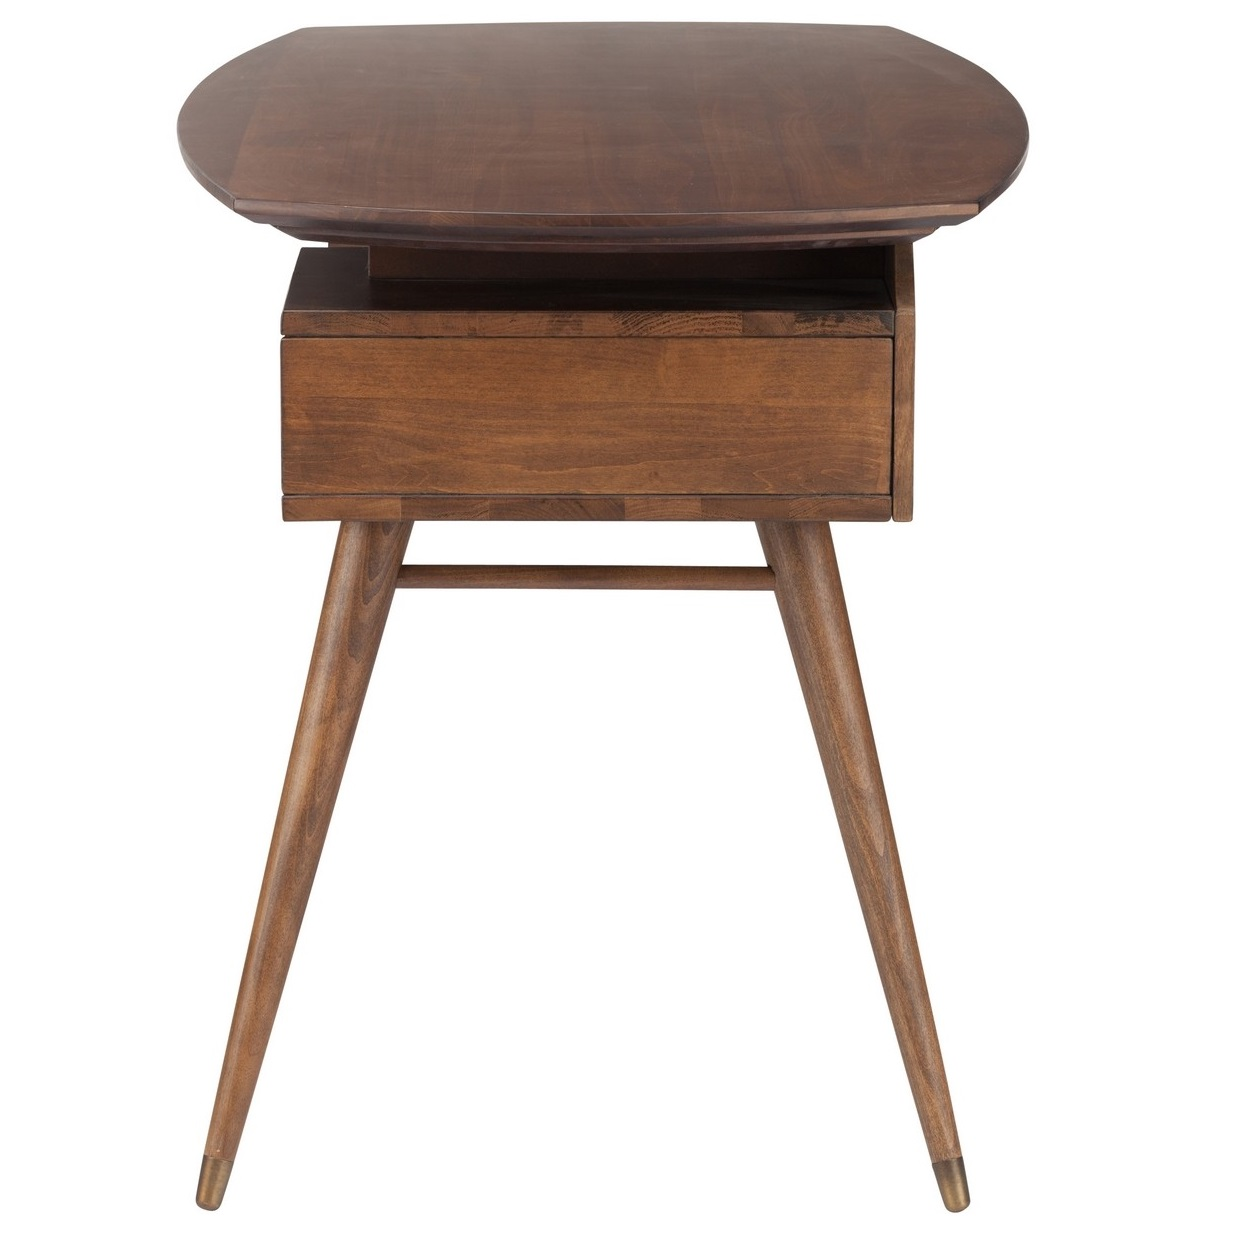 Carel desk mikaza meubles modernes montreal modern for Meuble lida montreal